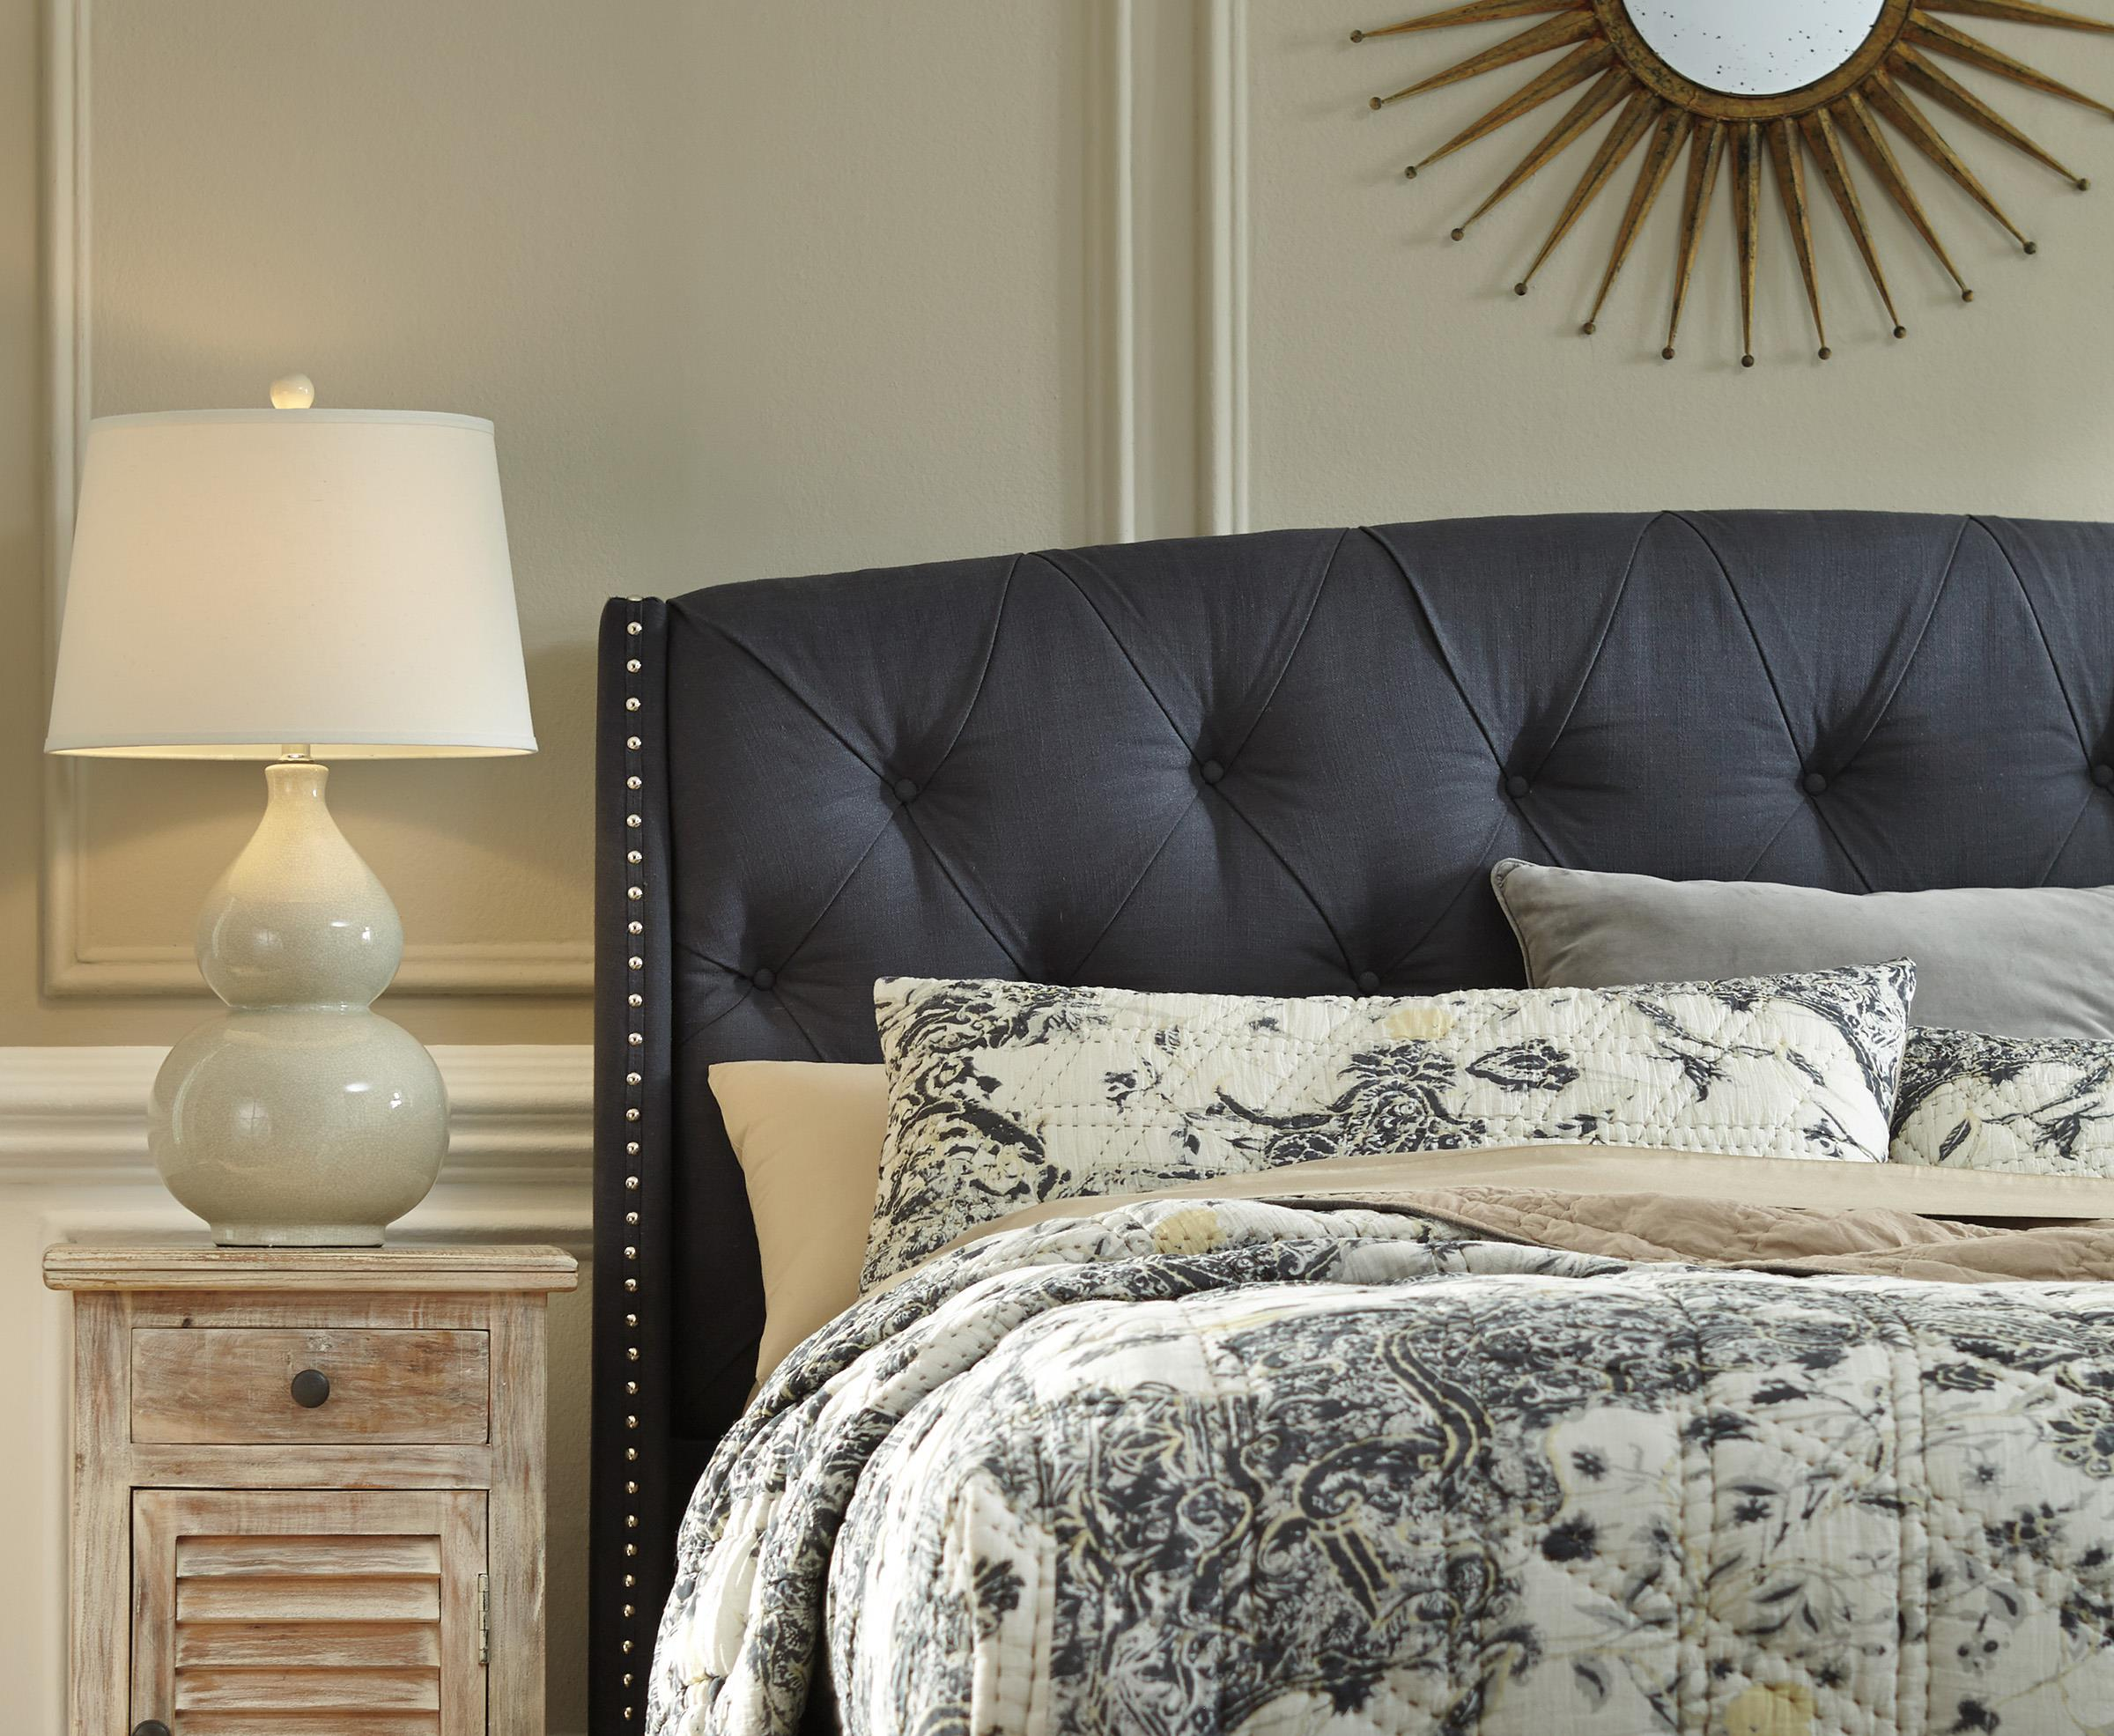 oyster california bay upholstered home bed detail tufted lexington items item headboard sag type harbor king hb